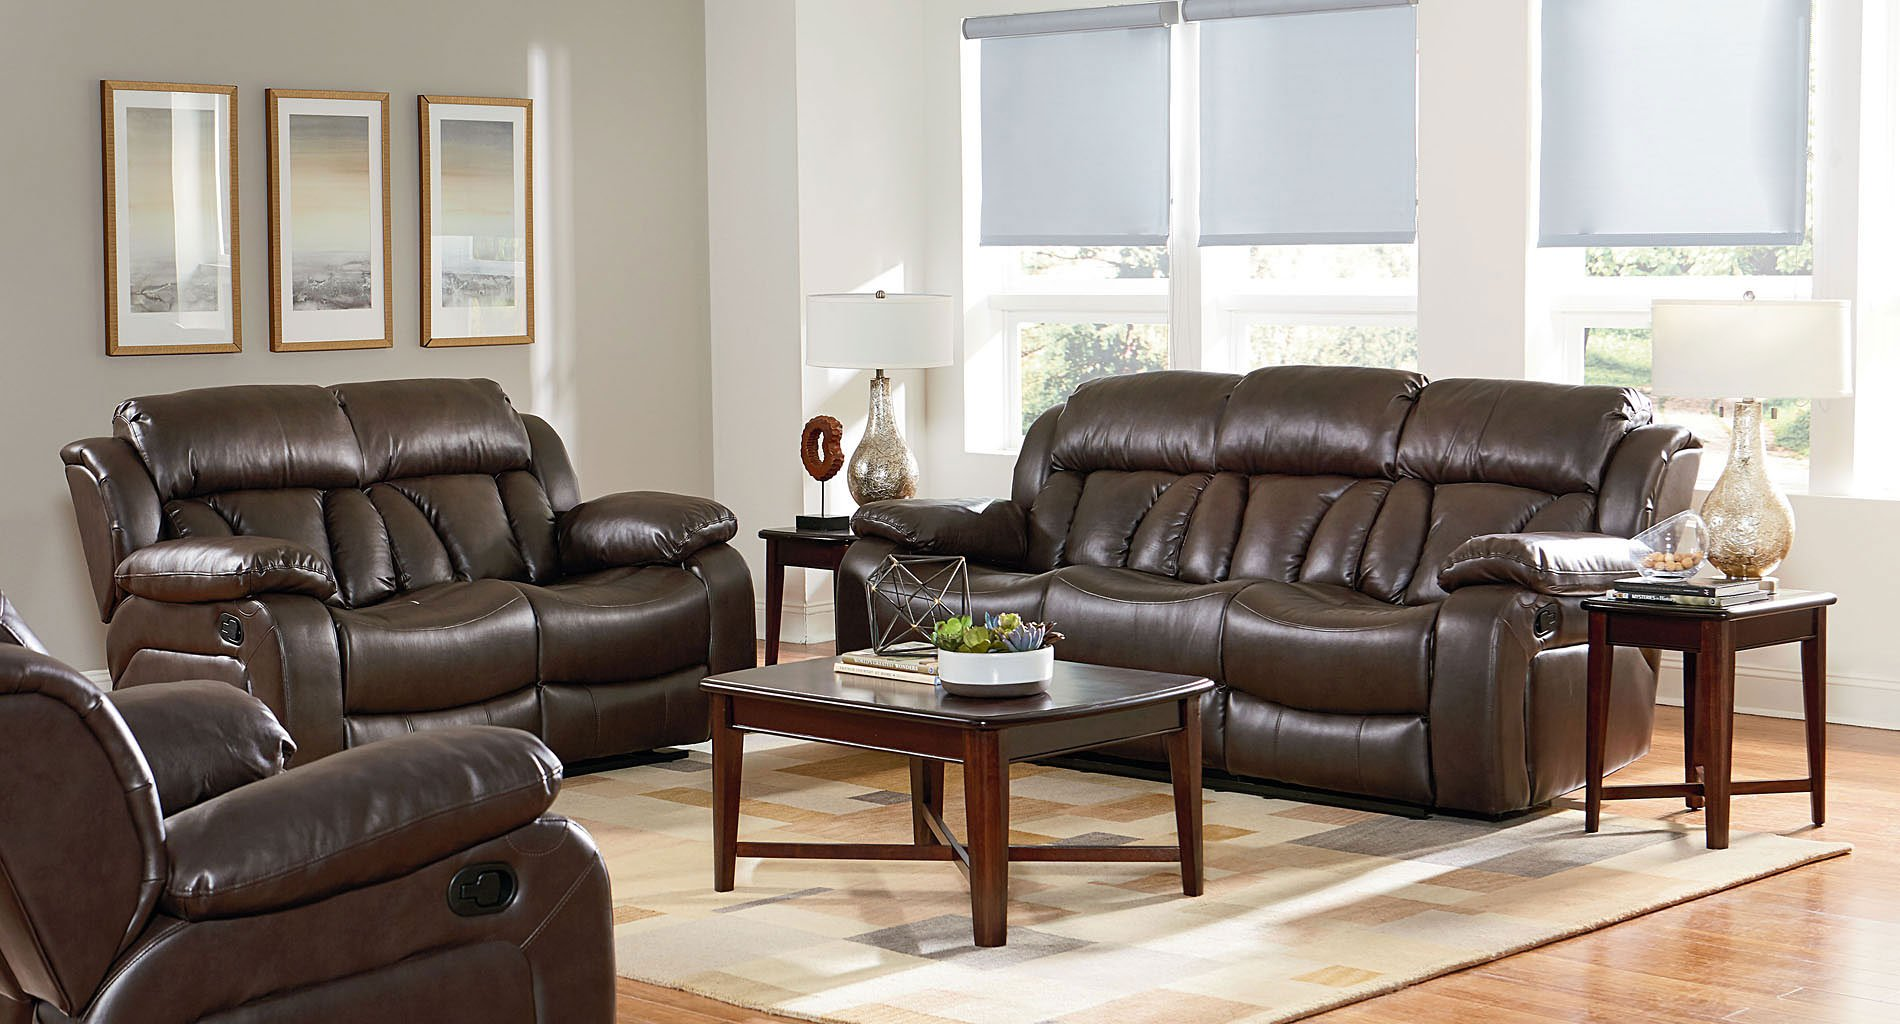 north shore reclining living room set living room sets living room